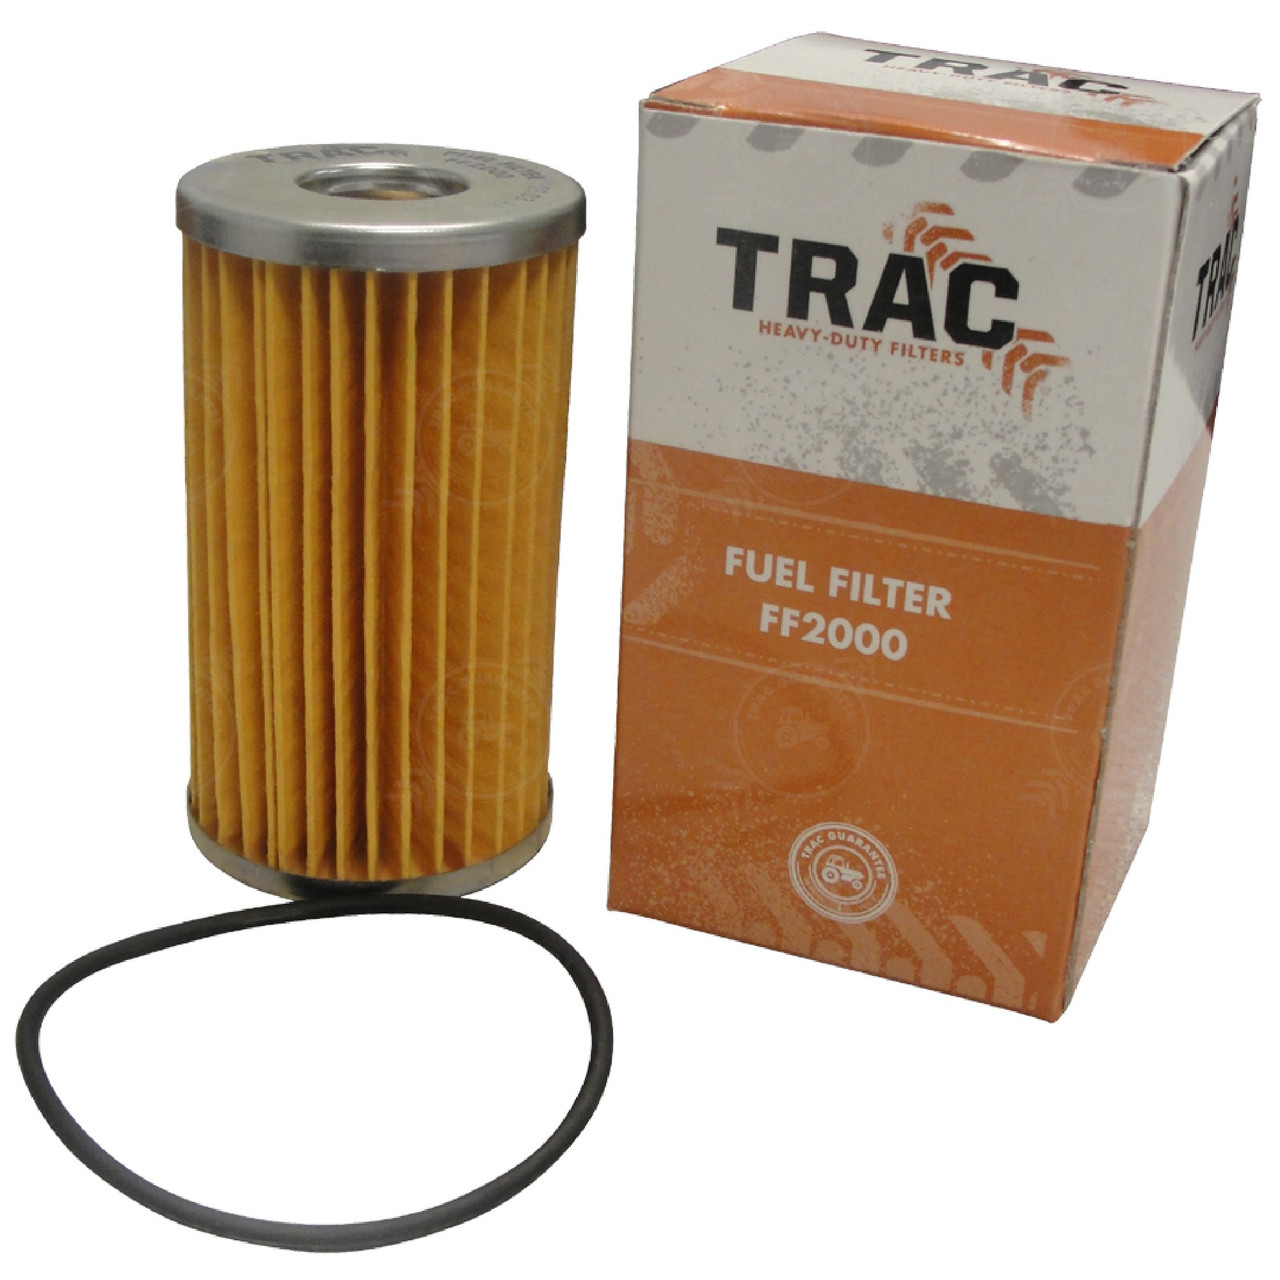 NEW Fuel Filter for Challenger Ford/New Holland John Deere Kioti Komatsu -  Complete TractorComplete Tractor